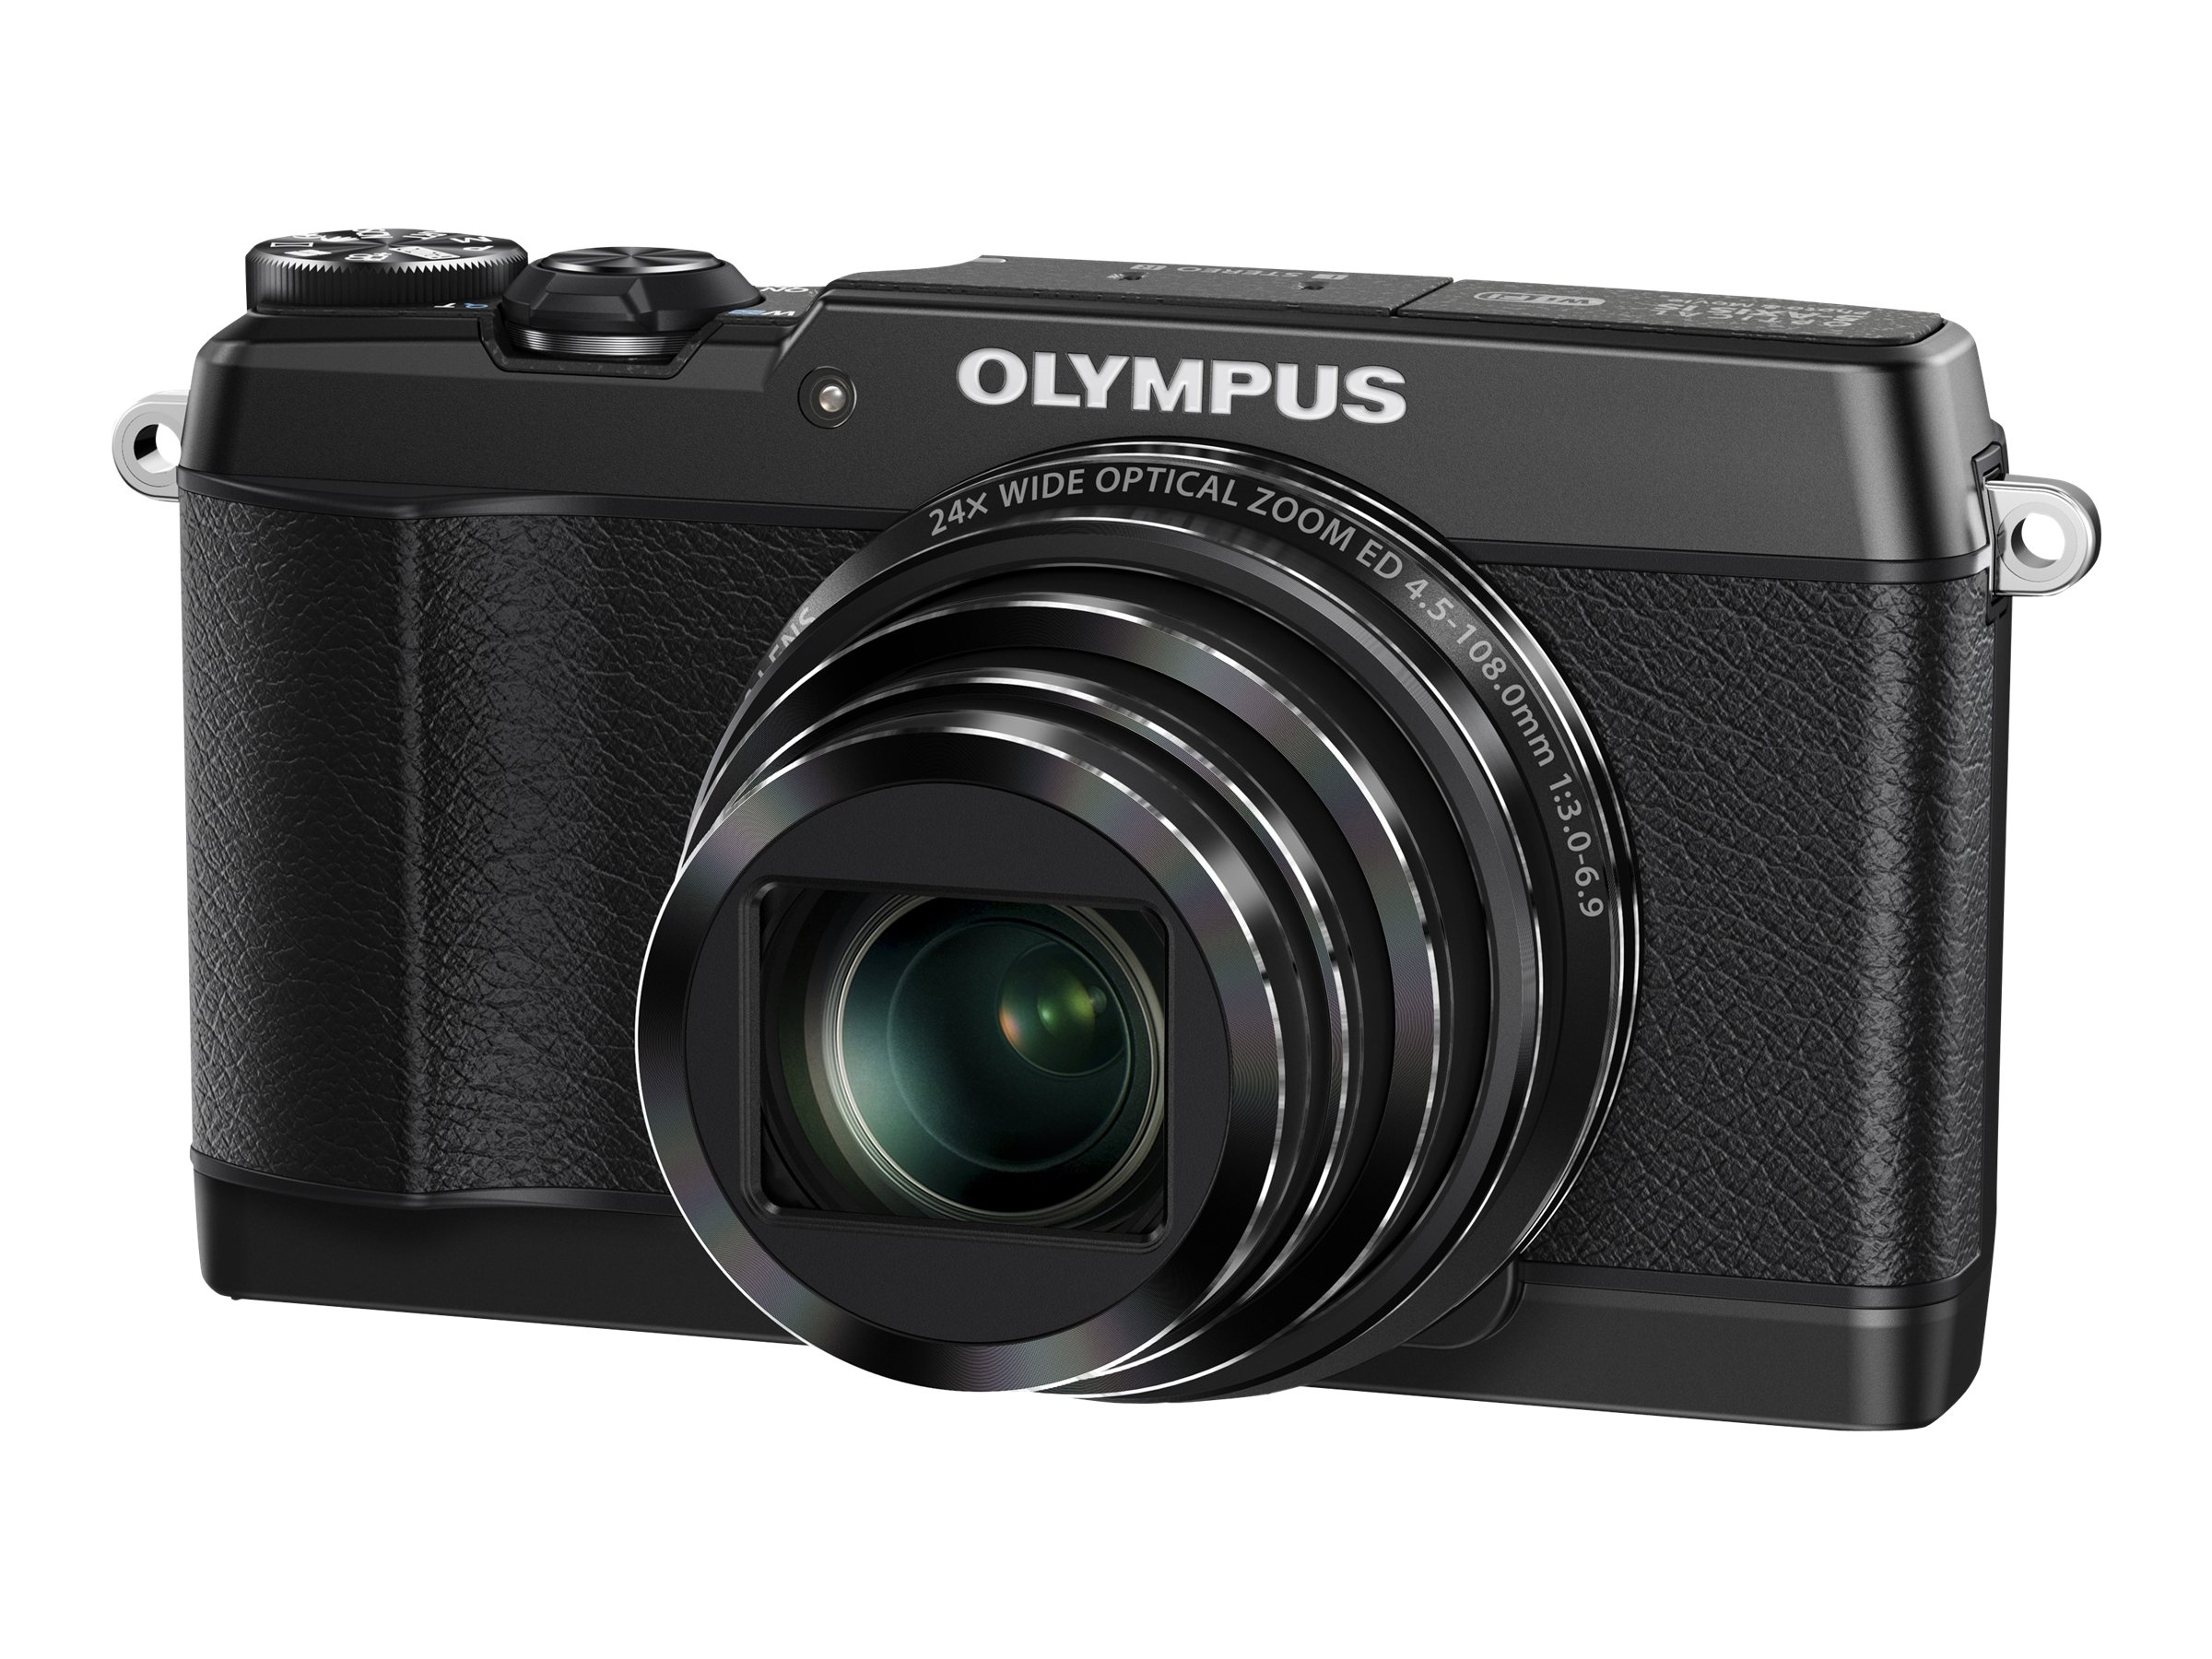 Olympus Stylus SH-1 Digital Camera, 16MP, Black, V107080BU000, 17051656, Cameras - Digital - Point & Shoot